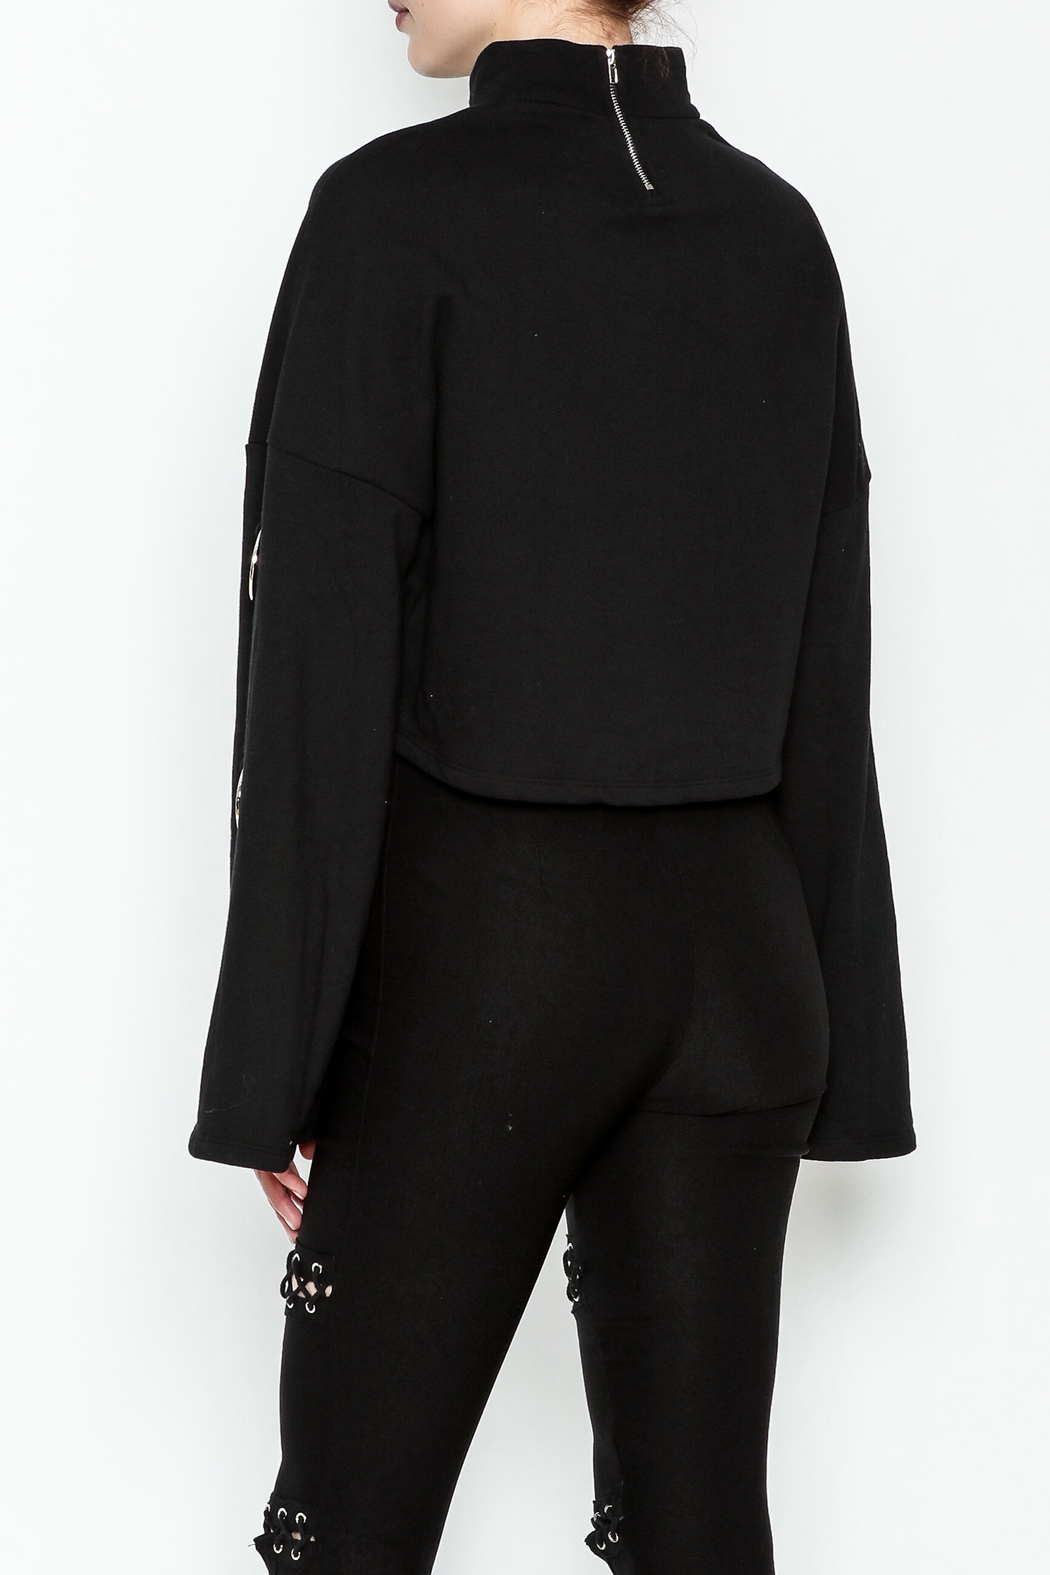 TIMELESS Asher Crop Sweater - Back Cropped Image